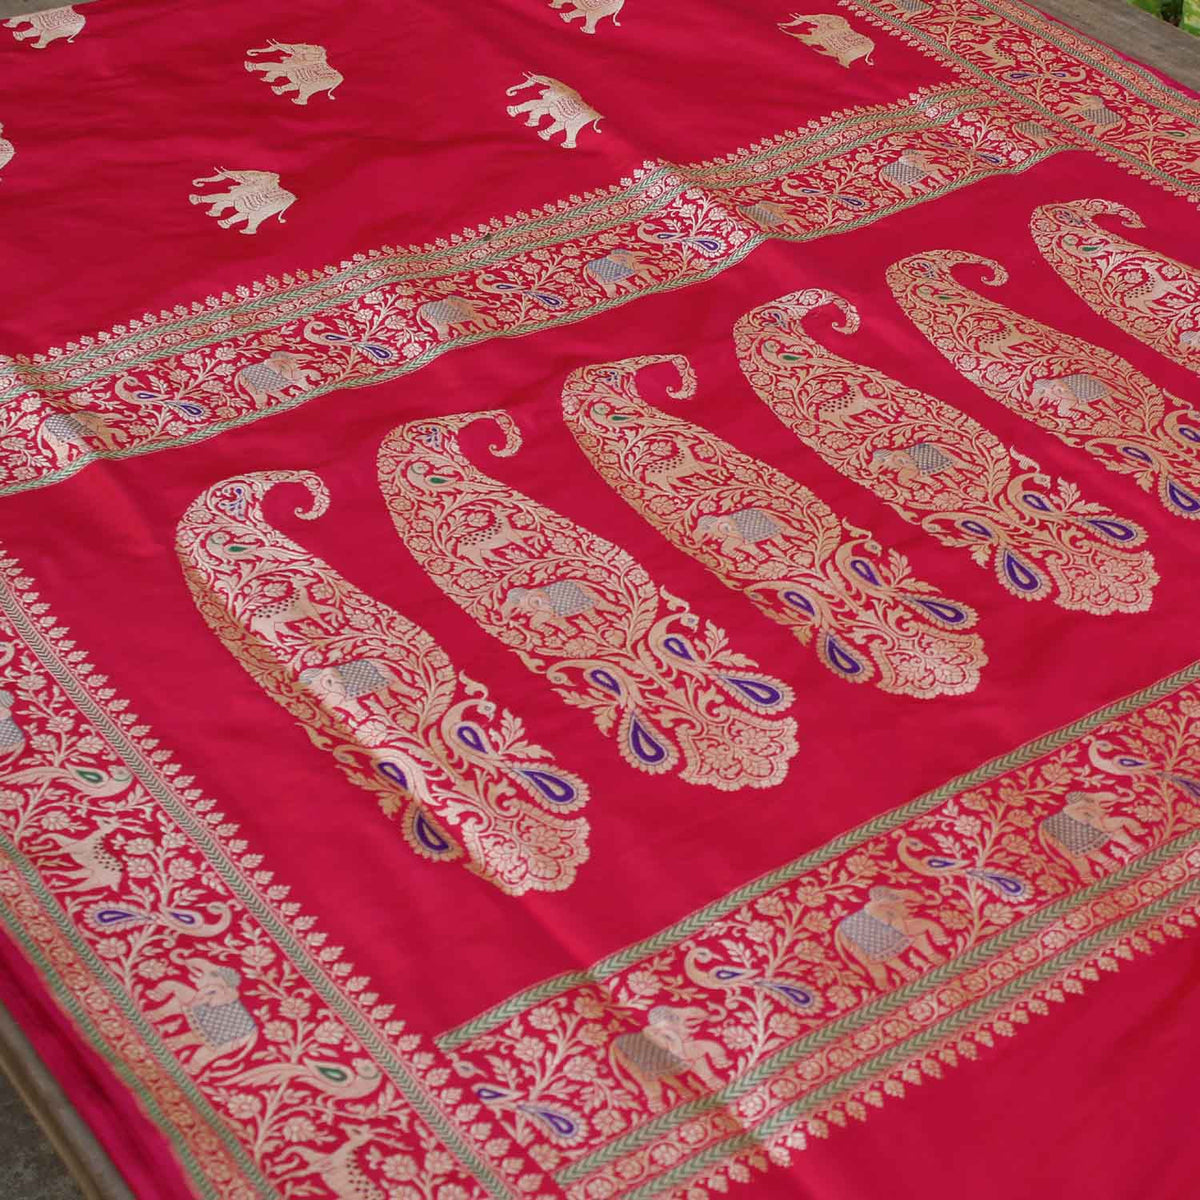 Red-Indian Pink Pure Katan Silk Banarasi Handloom Saree - Tilfi - 2